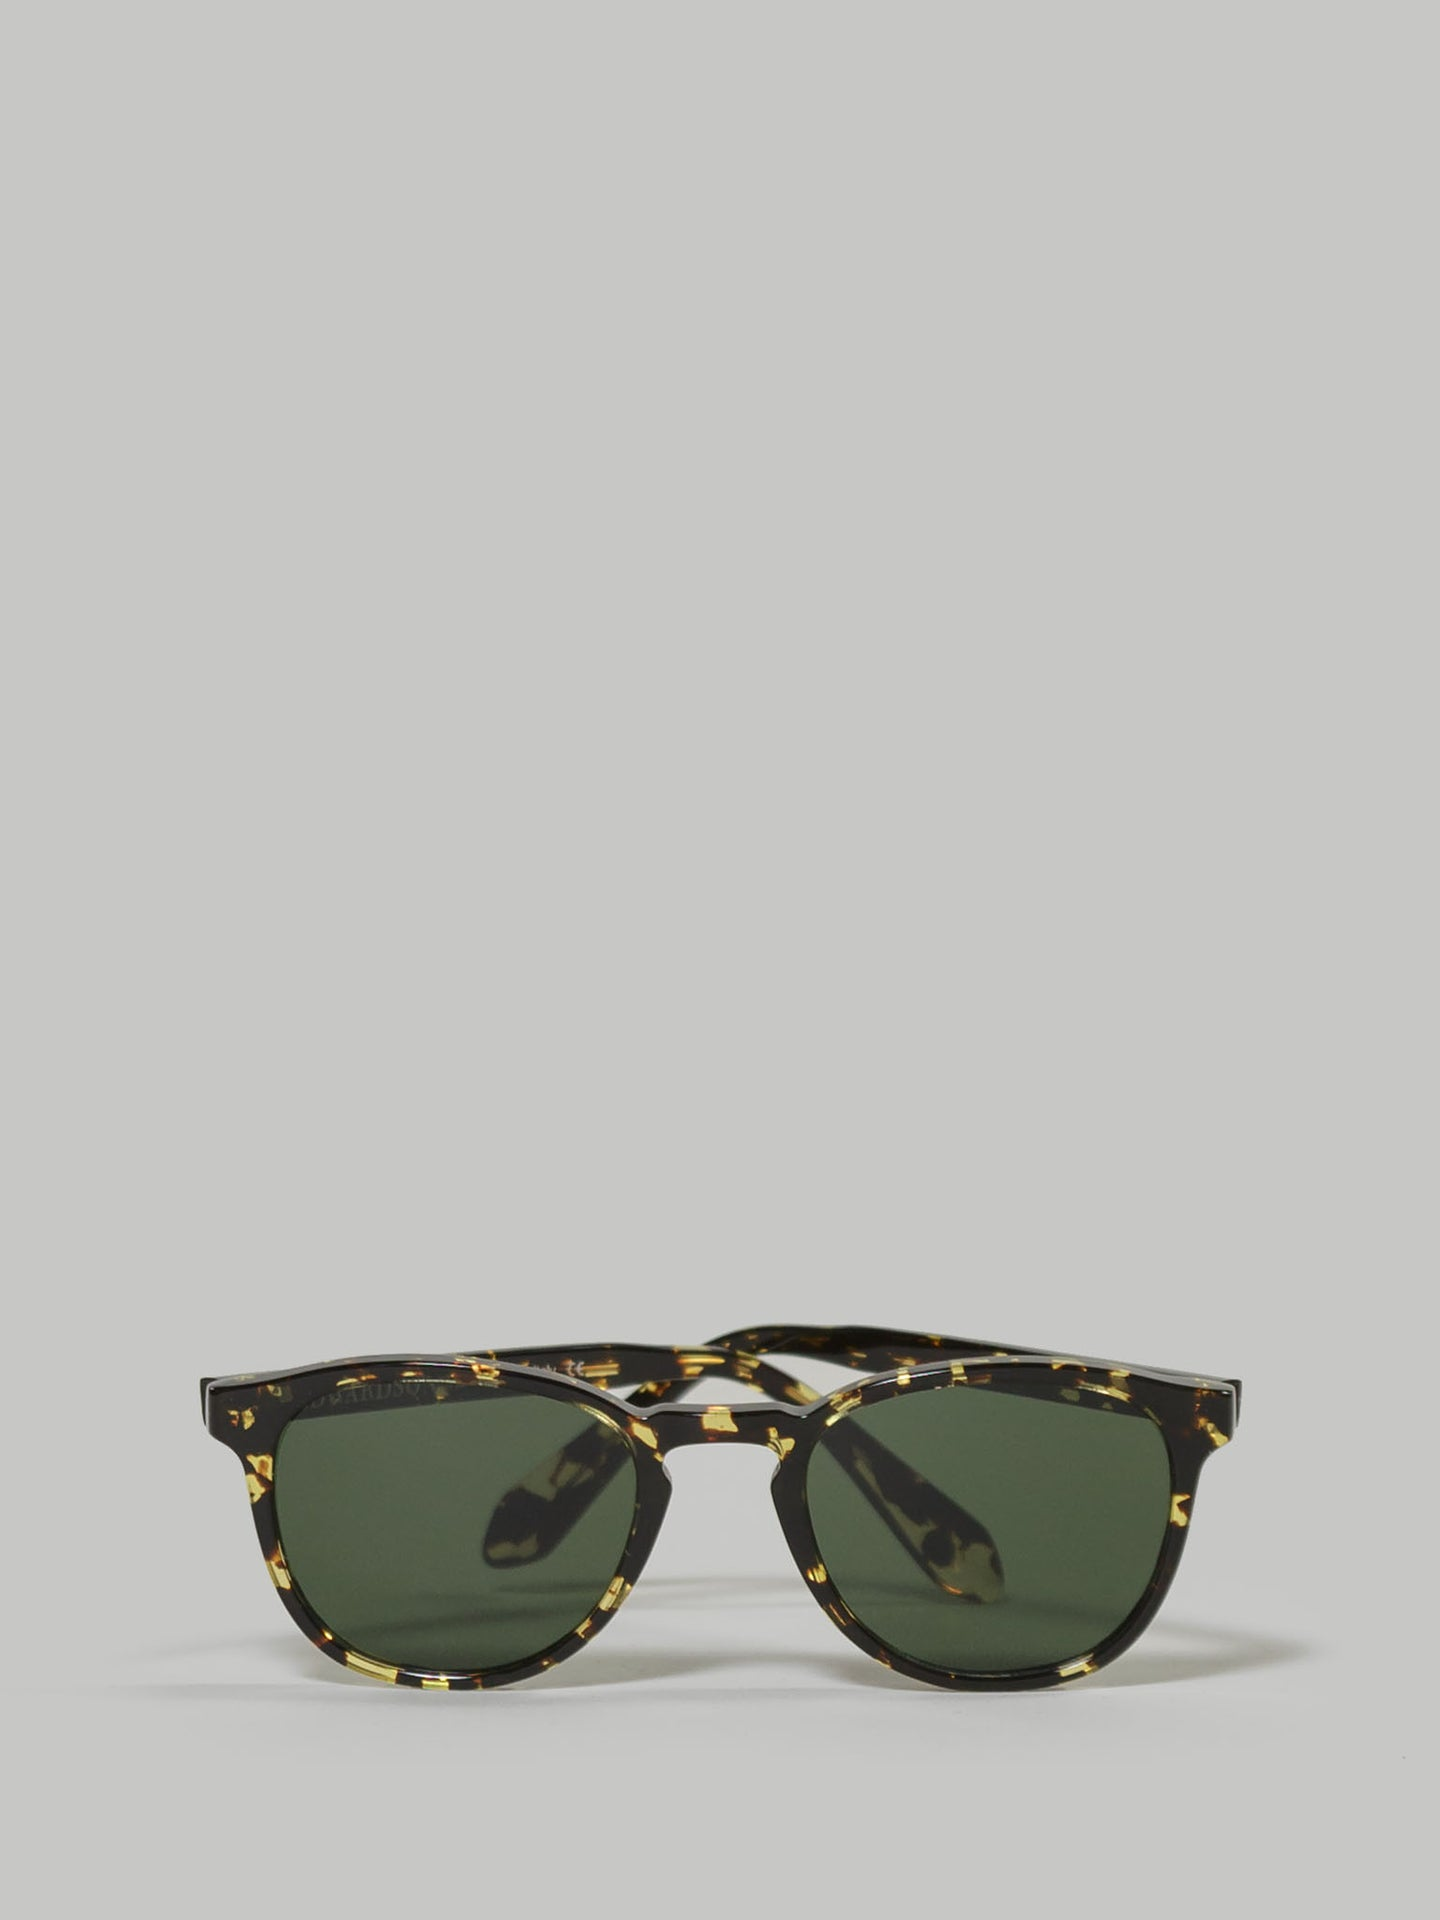 Edwardson Soho Sun Turtle Shell